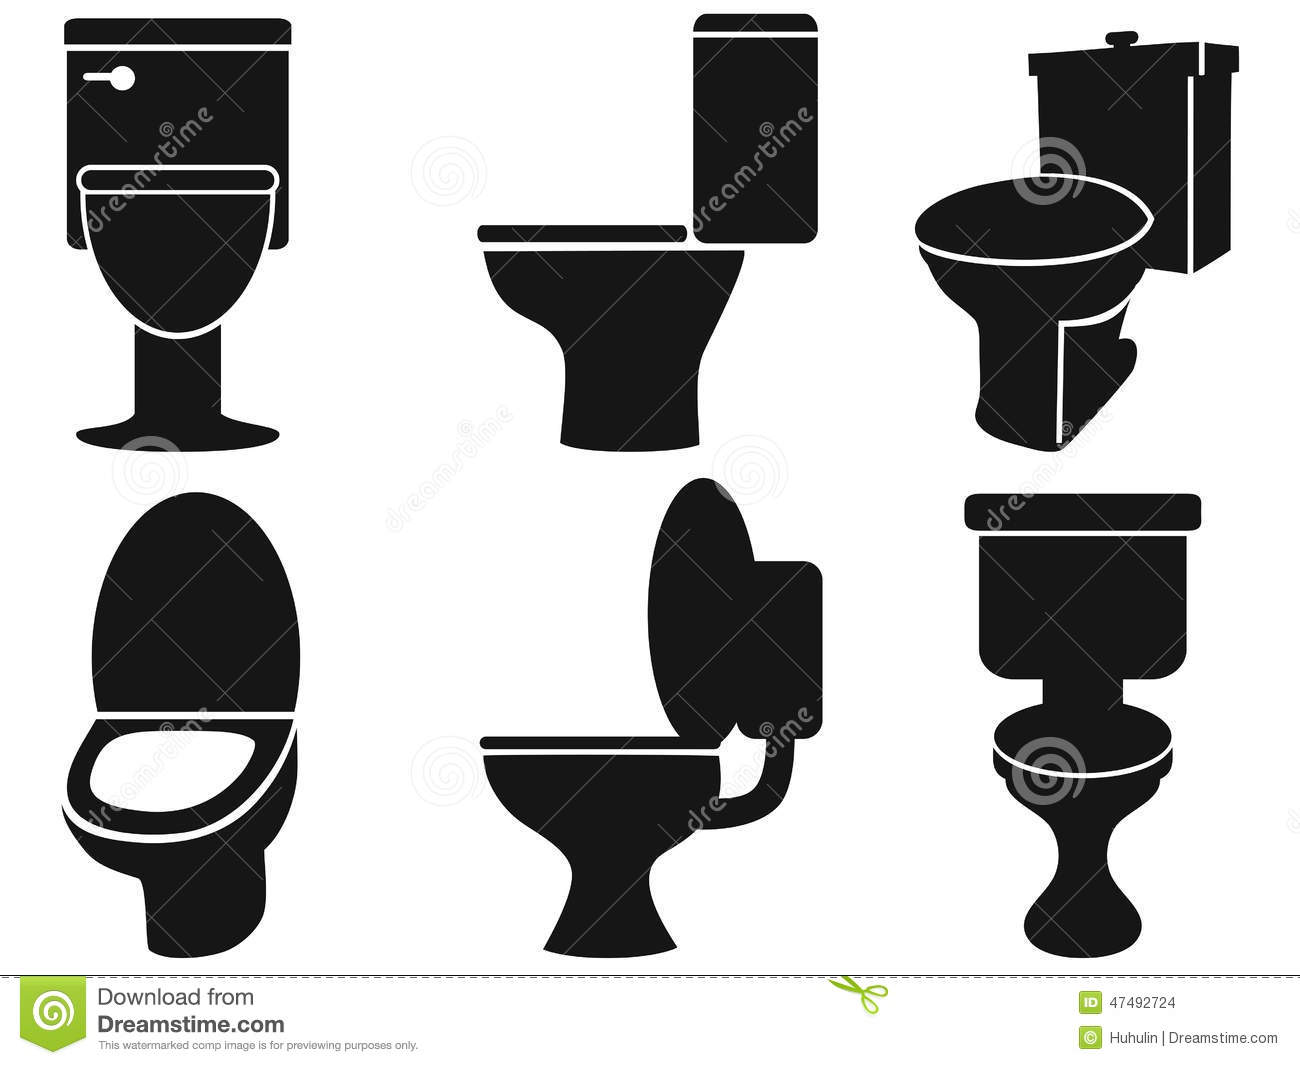 Free download of Toilet vector graphics and illustrations